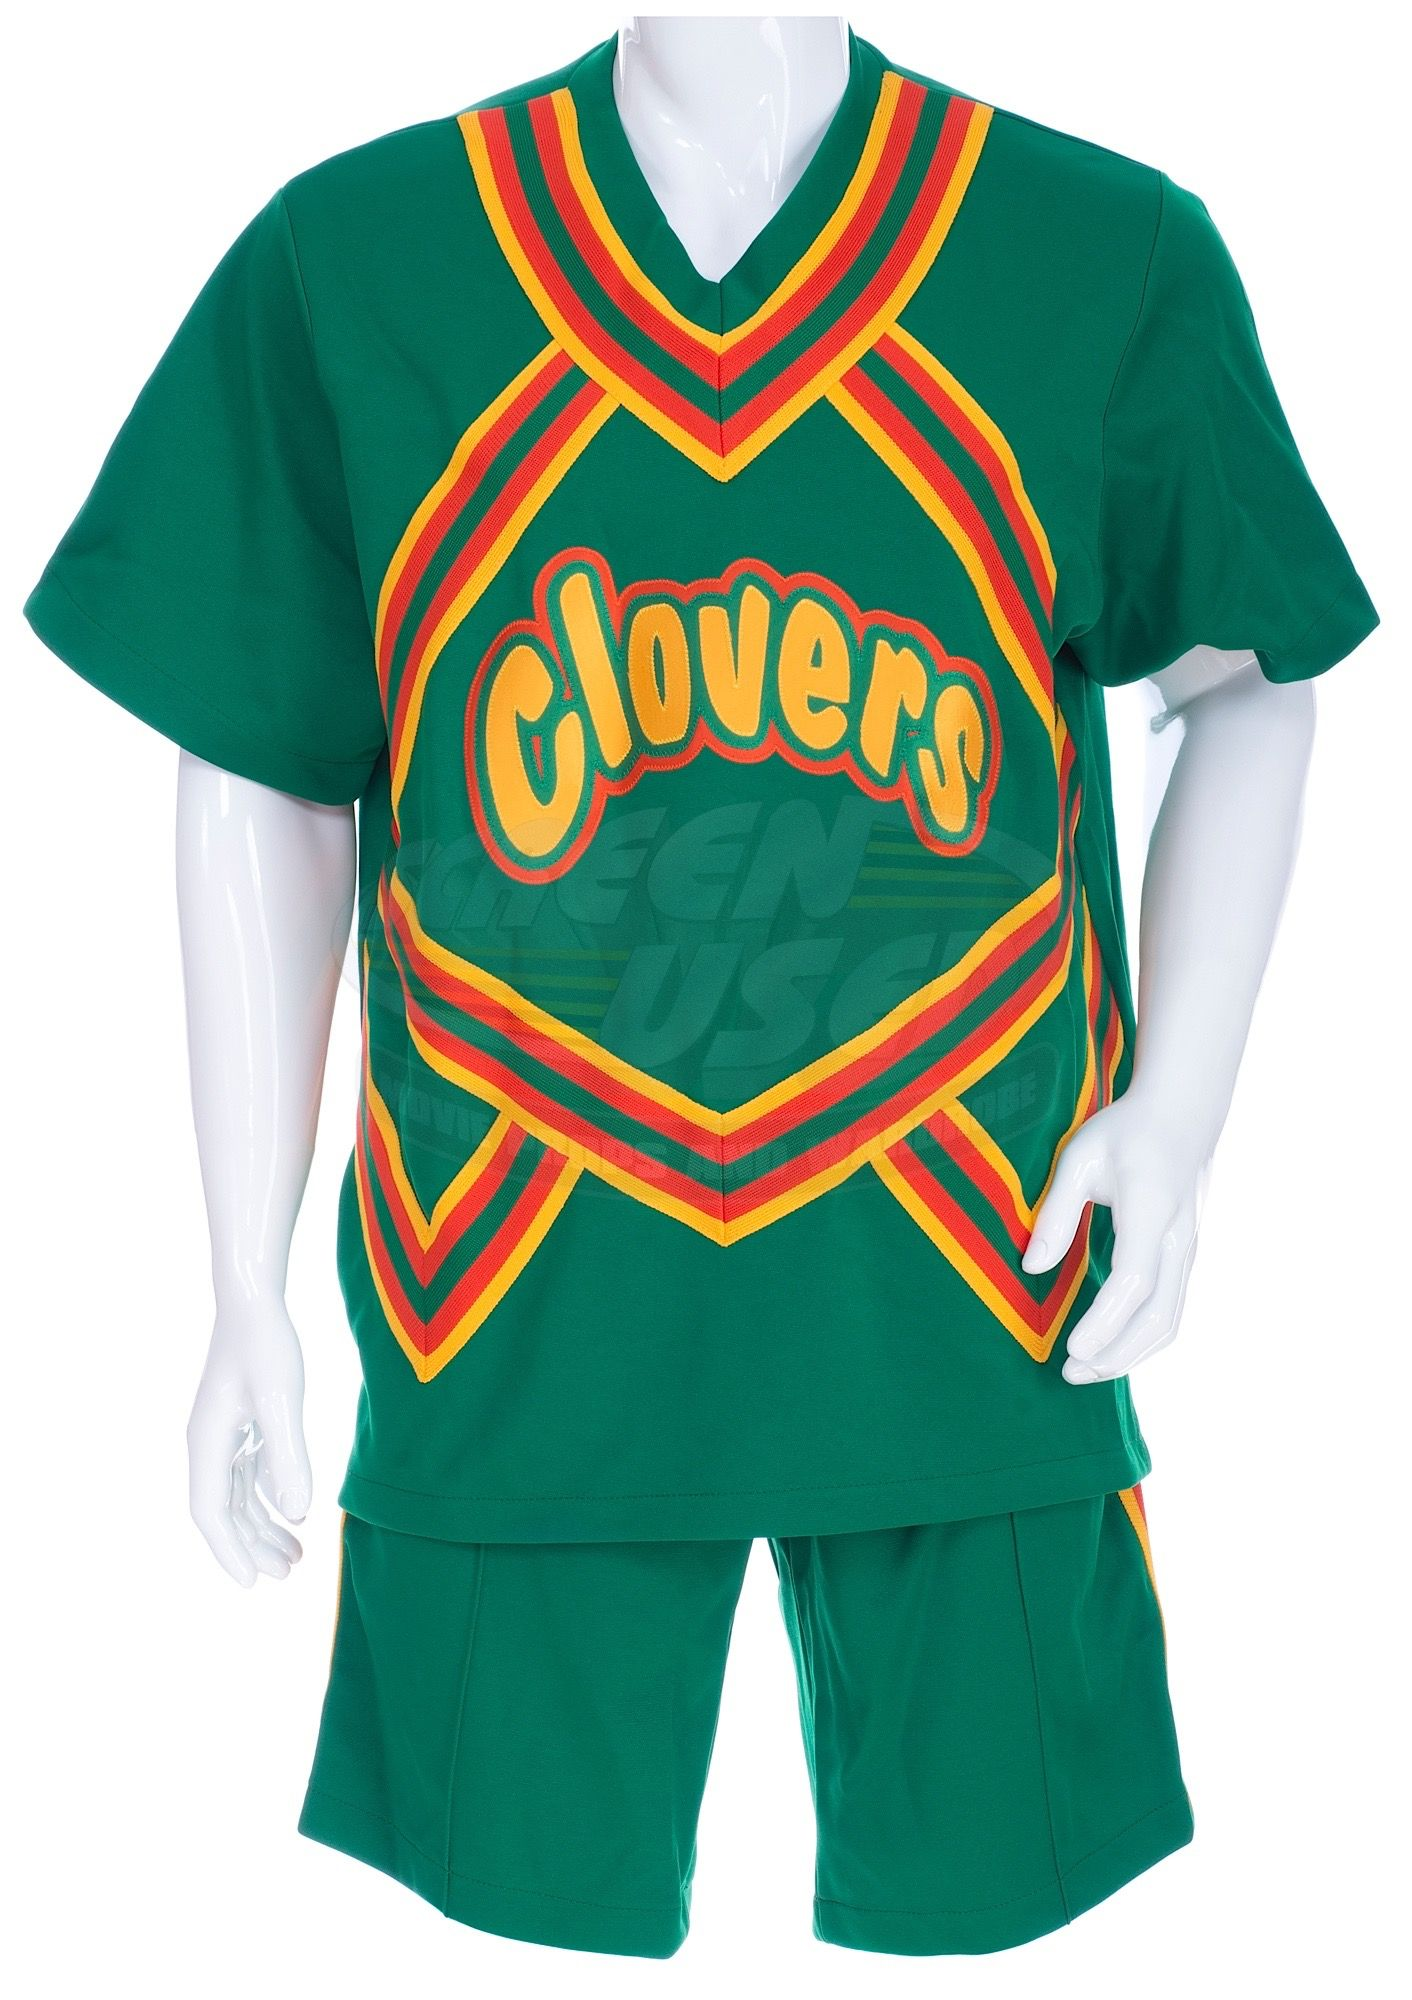 Bring It On   Male Clovers Cheerleading Outfit  cd33142e0